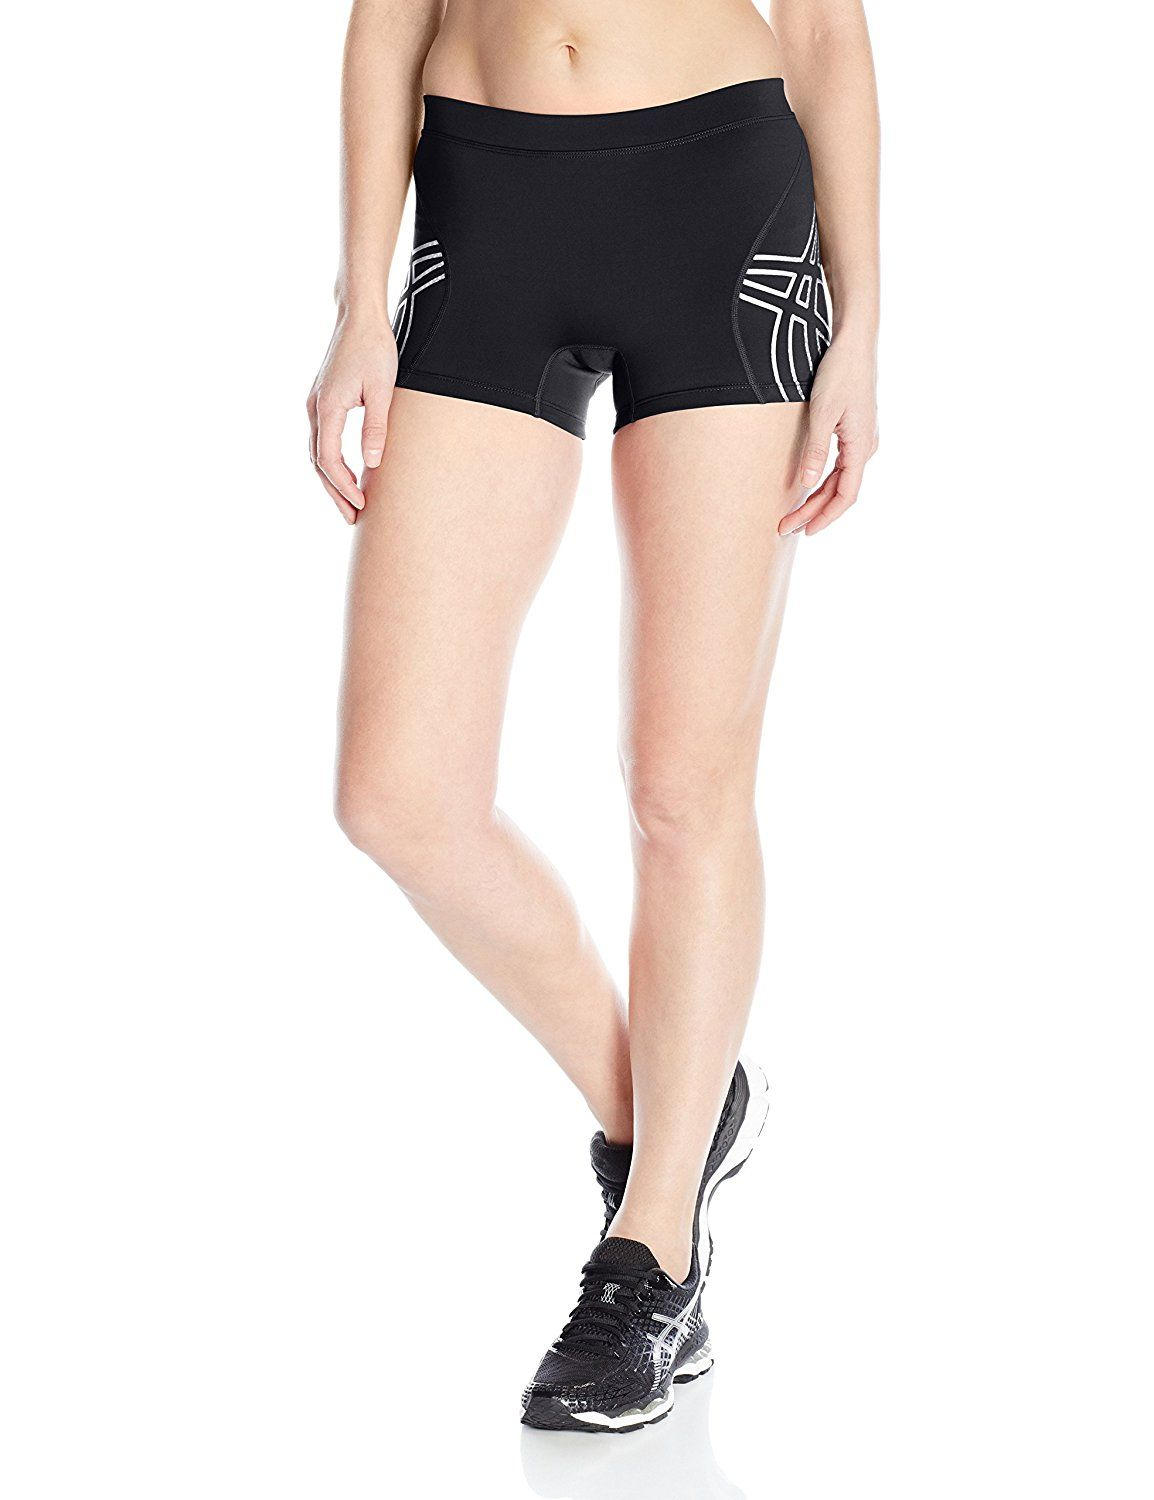 Asics Women S Team Performance Volleyball Shorts This Is An Amazon Affiliate Link Click Image For More D Volleyball Shorts Asics Women Active Wear For Women